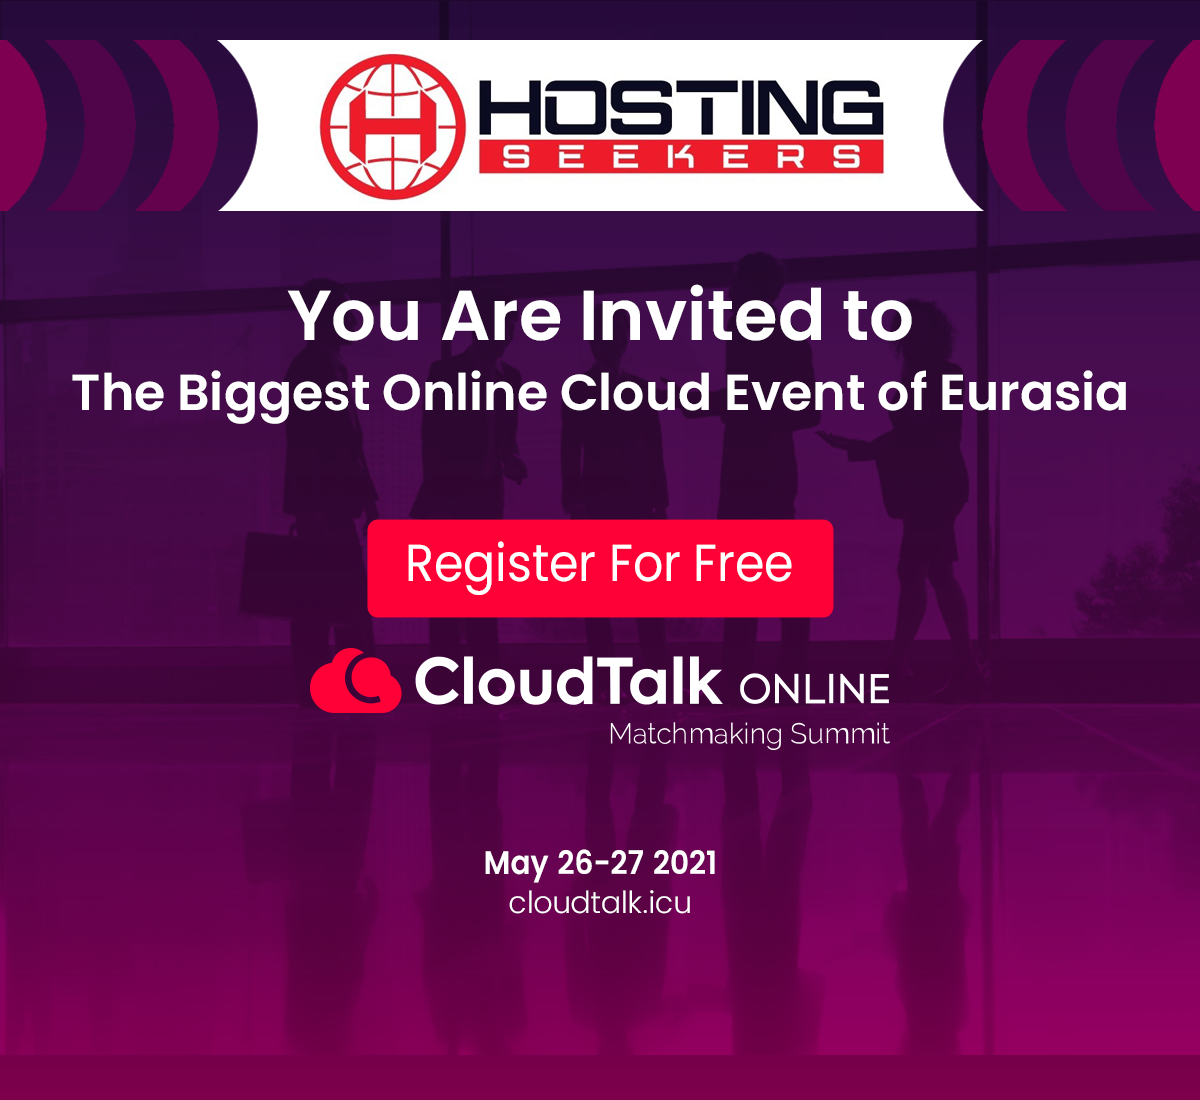 You are invited to the biggest online cloud event of Eurasia